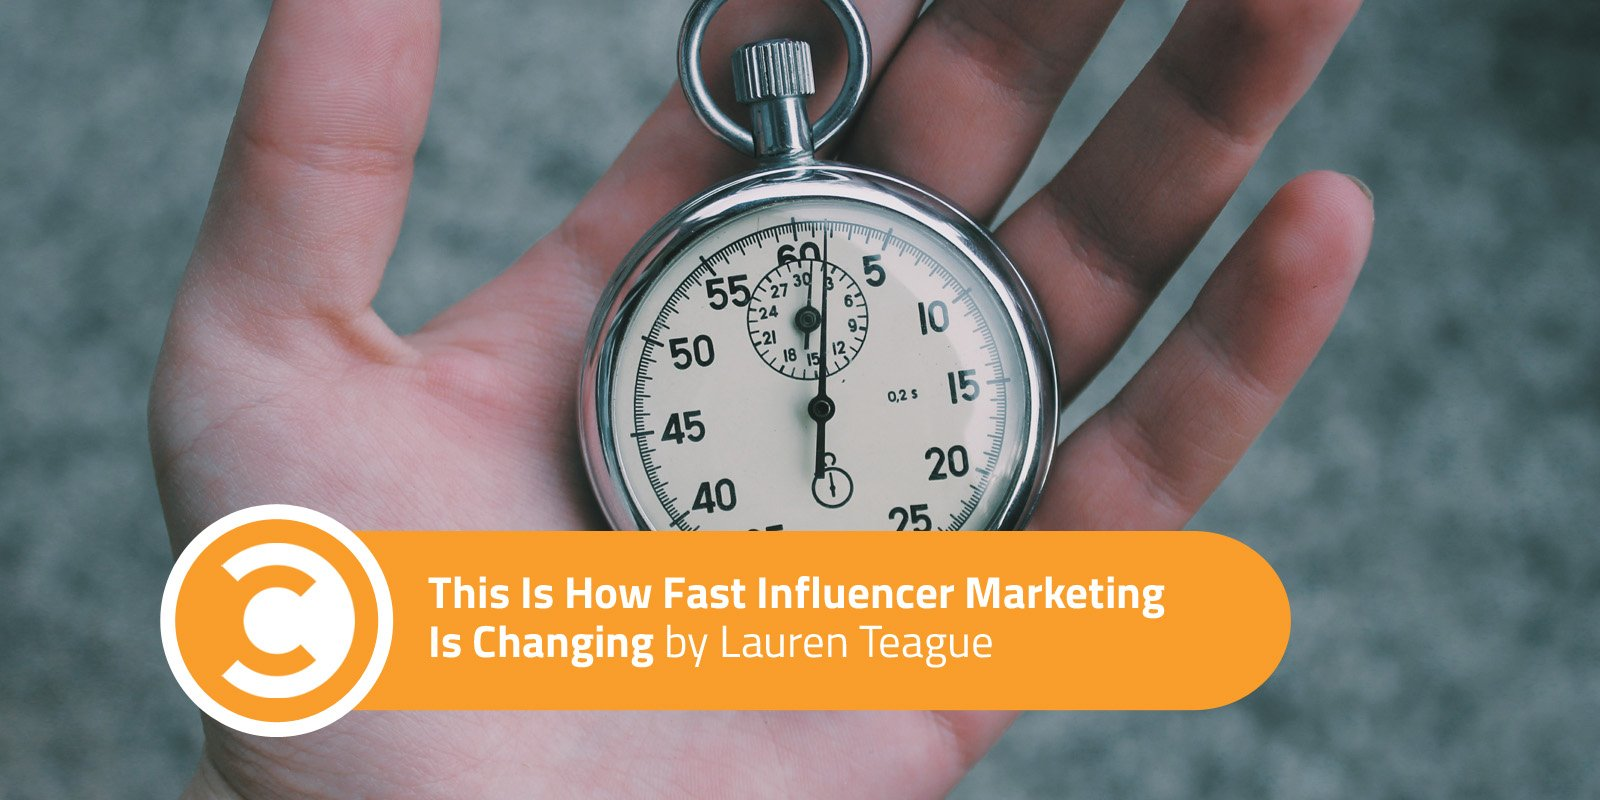 This Is How Fast Influencer Marketing Is Changing